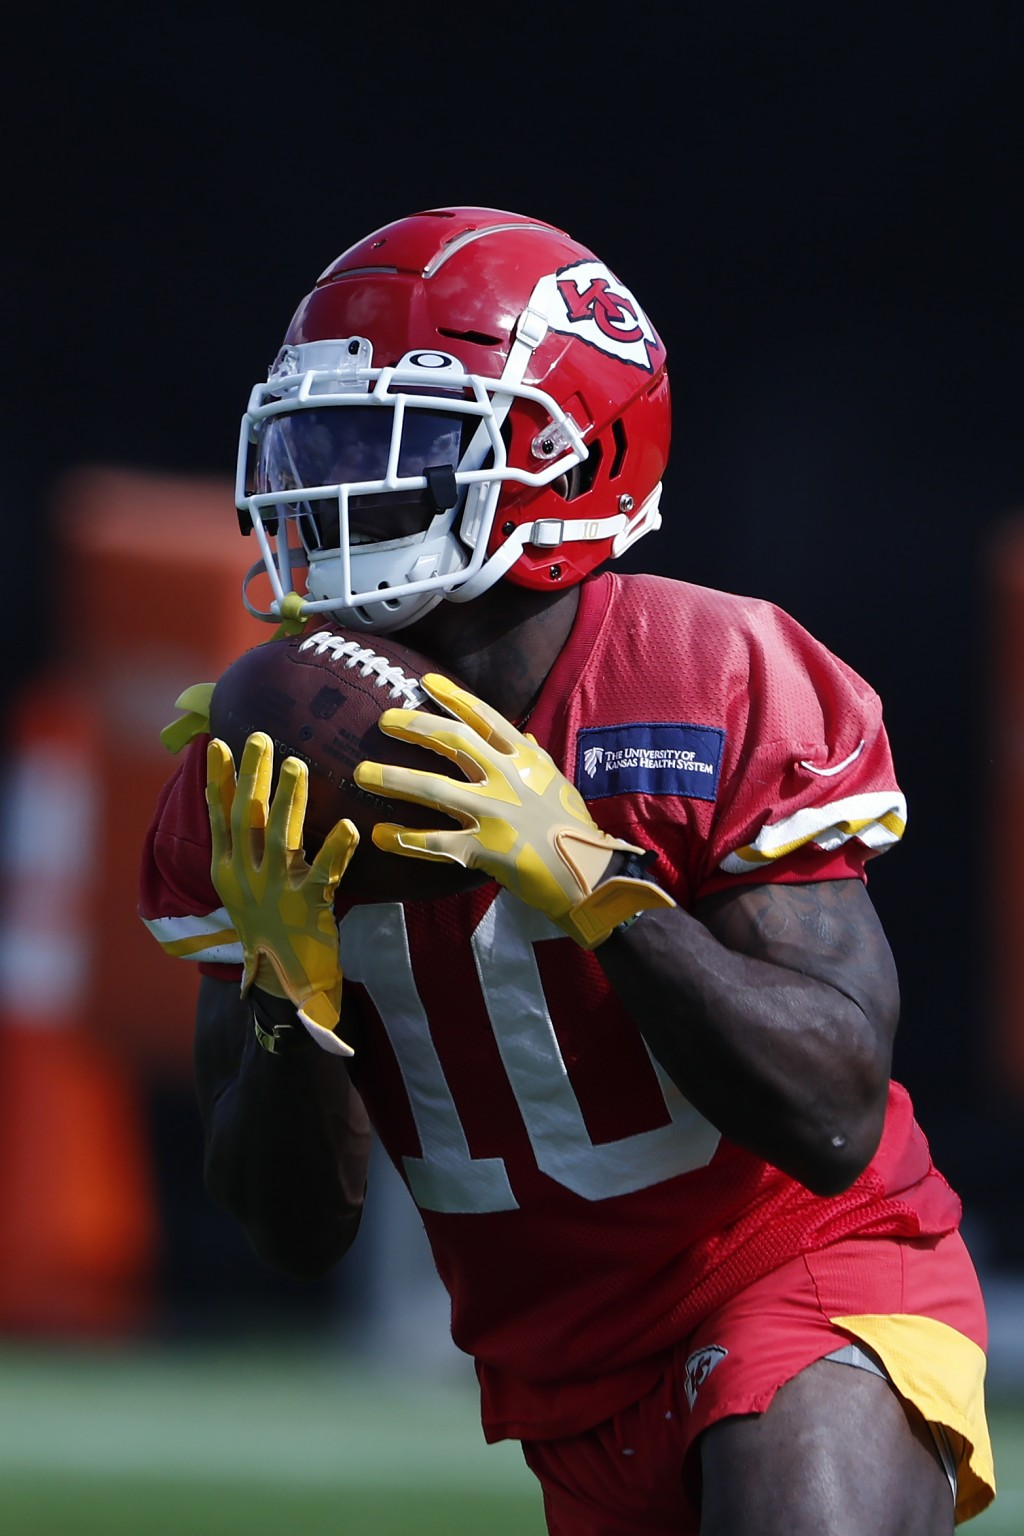 Kansas City Chiefs wide receiver Tyreek Hill (10) catches the ball during practice on Thursday, Jan. 30, 2020, in Davie, Fla., for the NFL Super Bowl ...